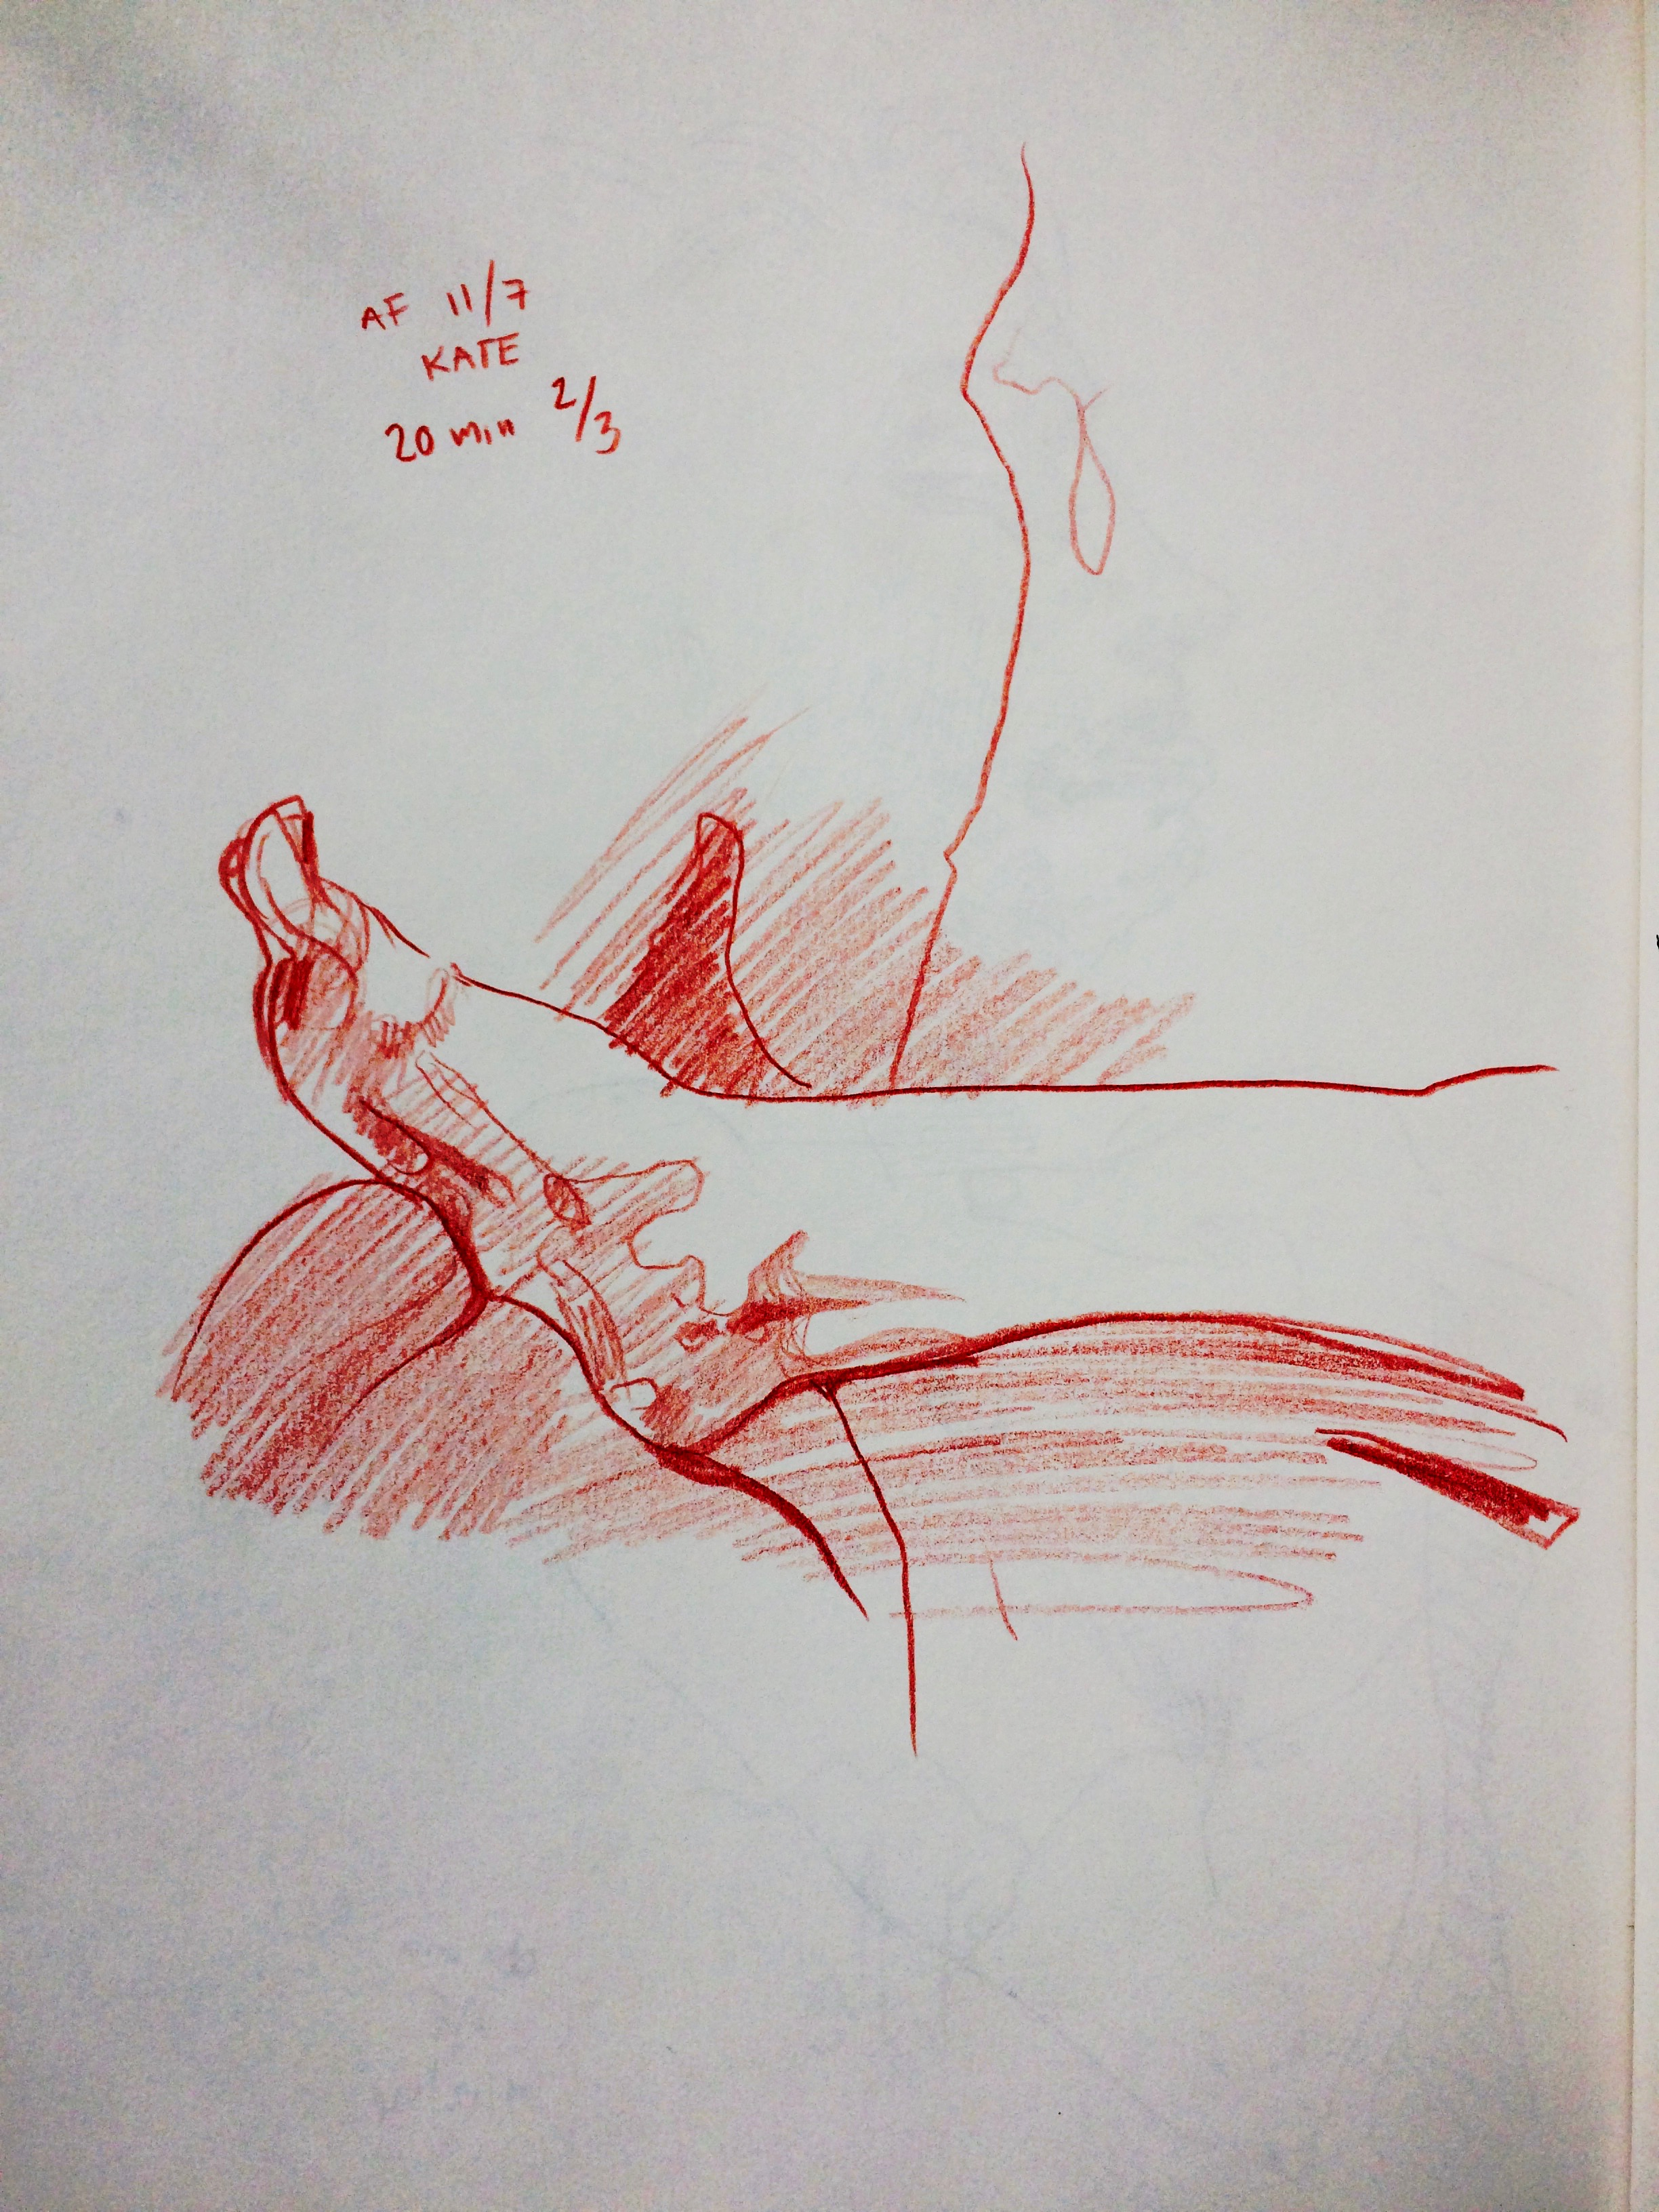 Right foot drawn in red pencil by Alex Feliciano